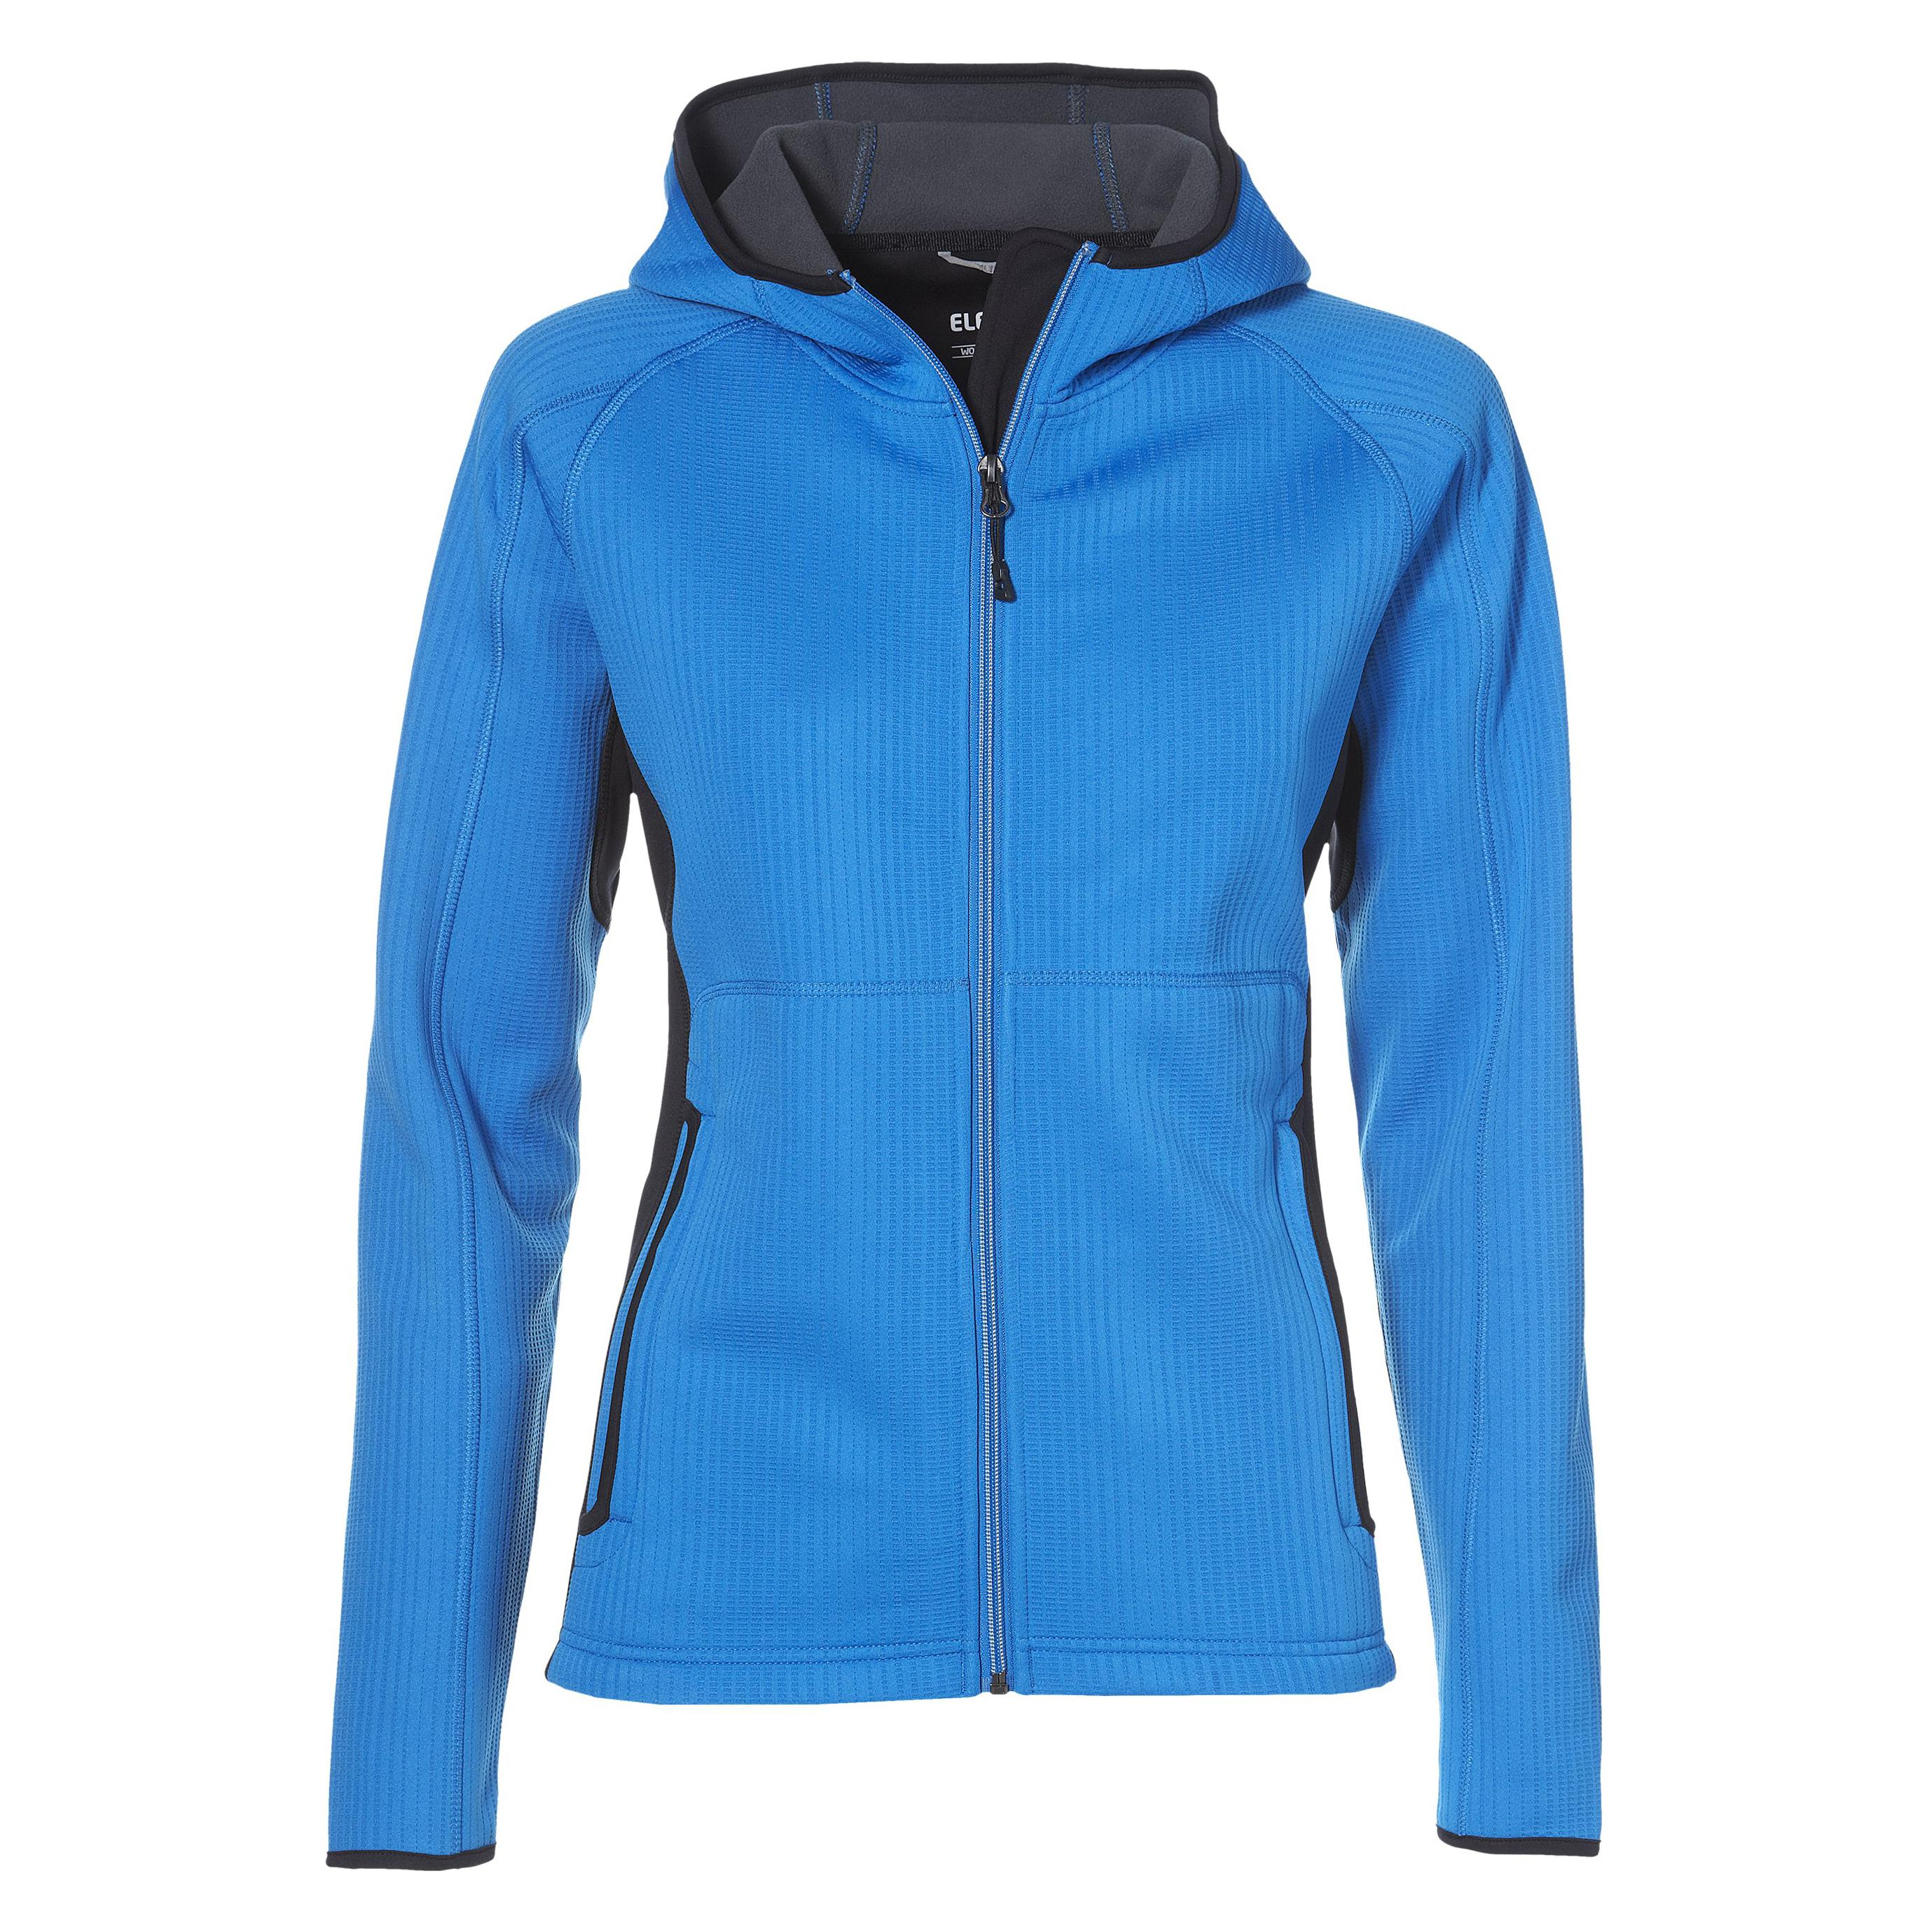 Ladies Ferno Bonded Knit Jacket - Blue Only